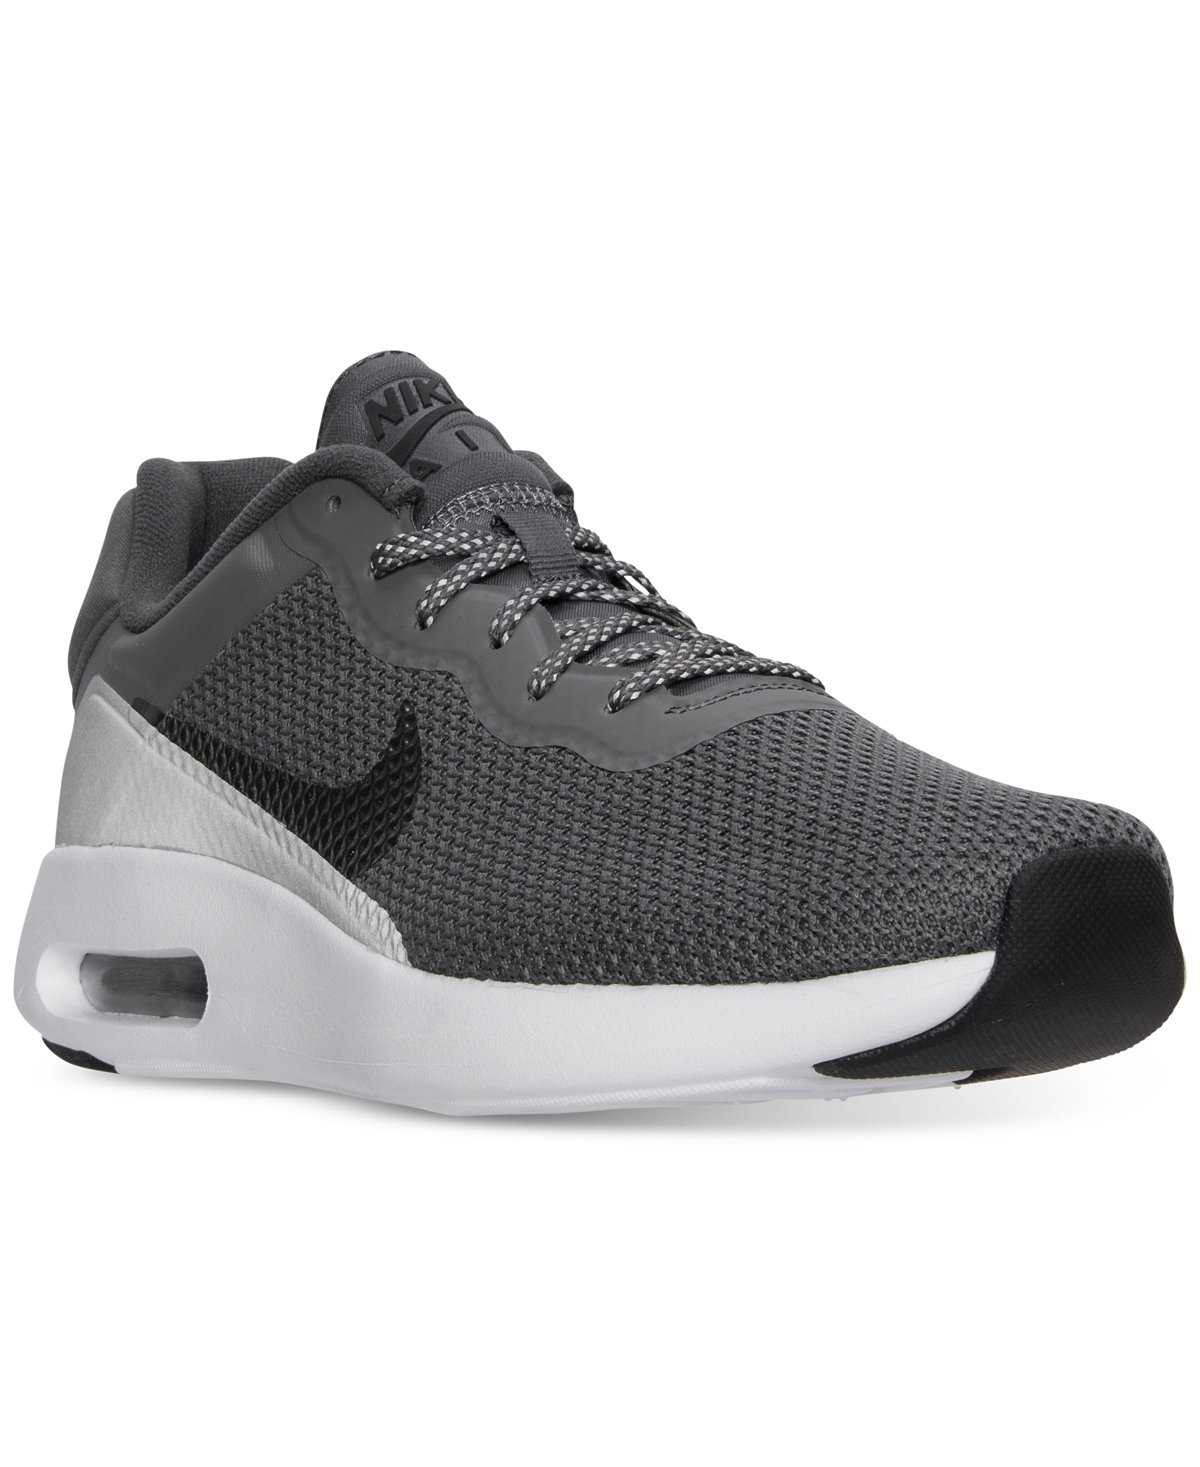 Nike Air Max Modern Essential SE Men's Running Shoes